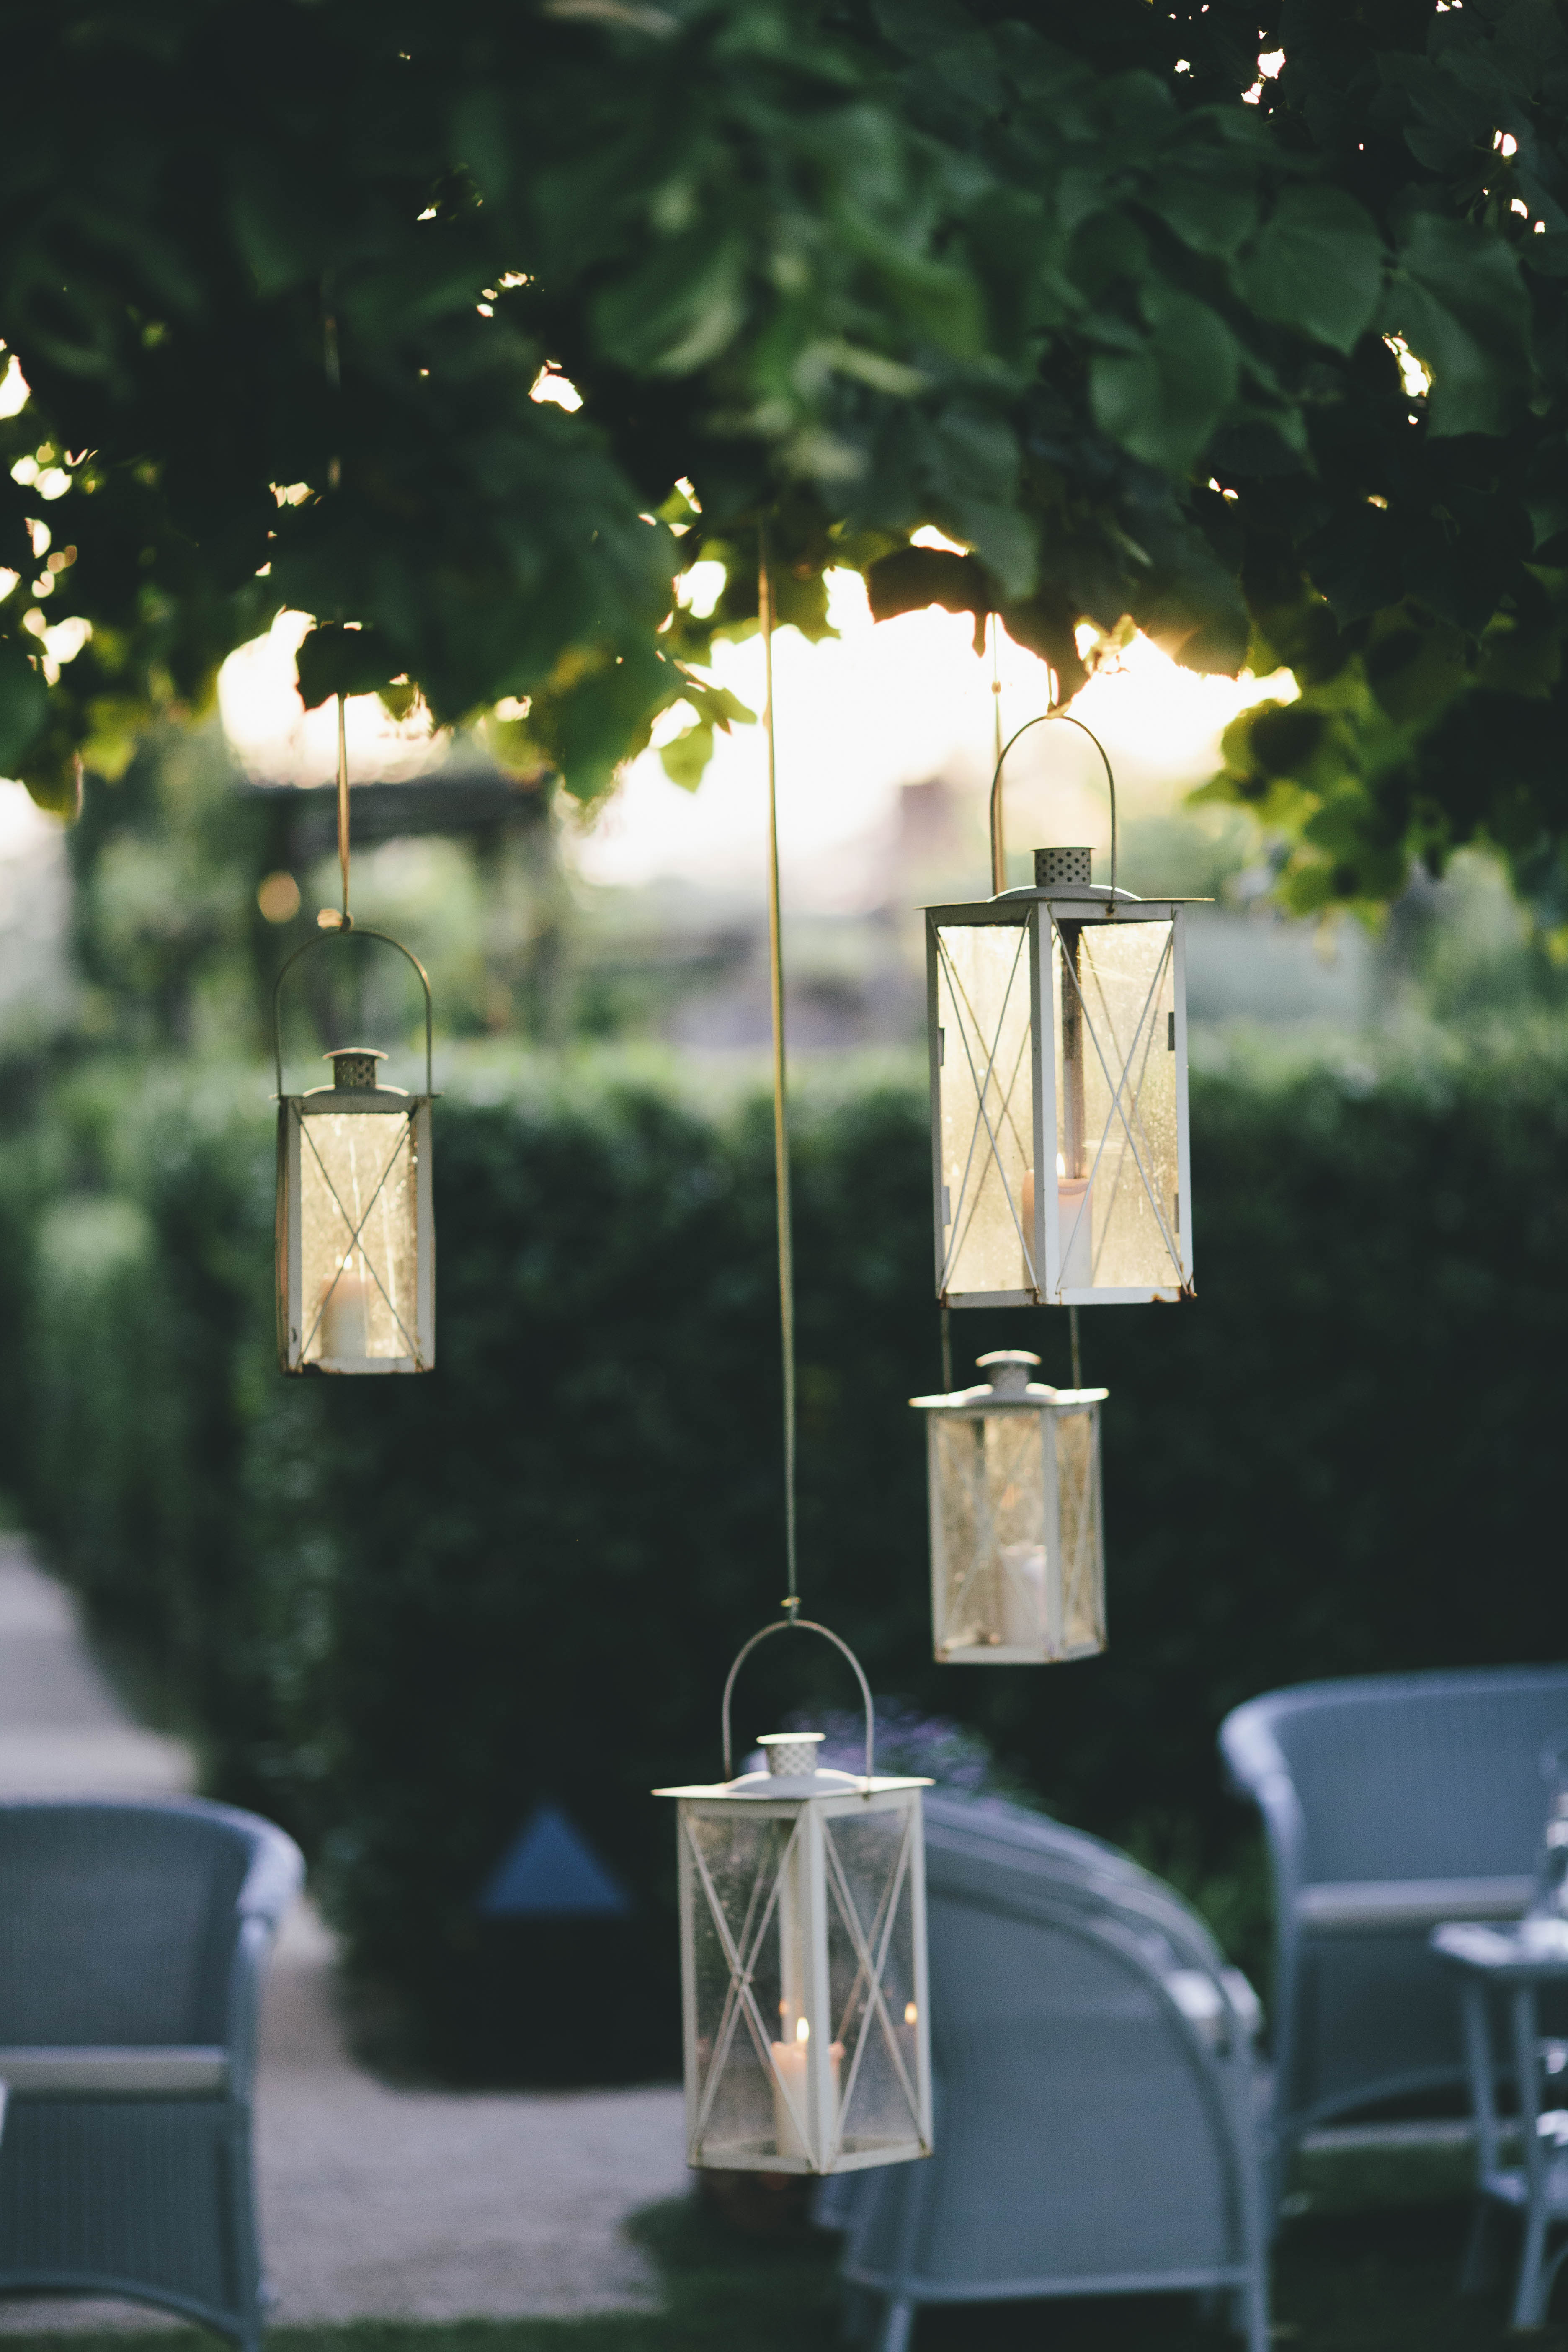 lanterns hanging from trees